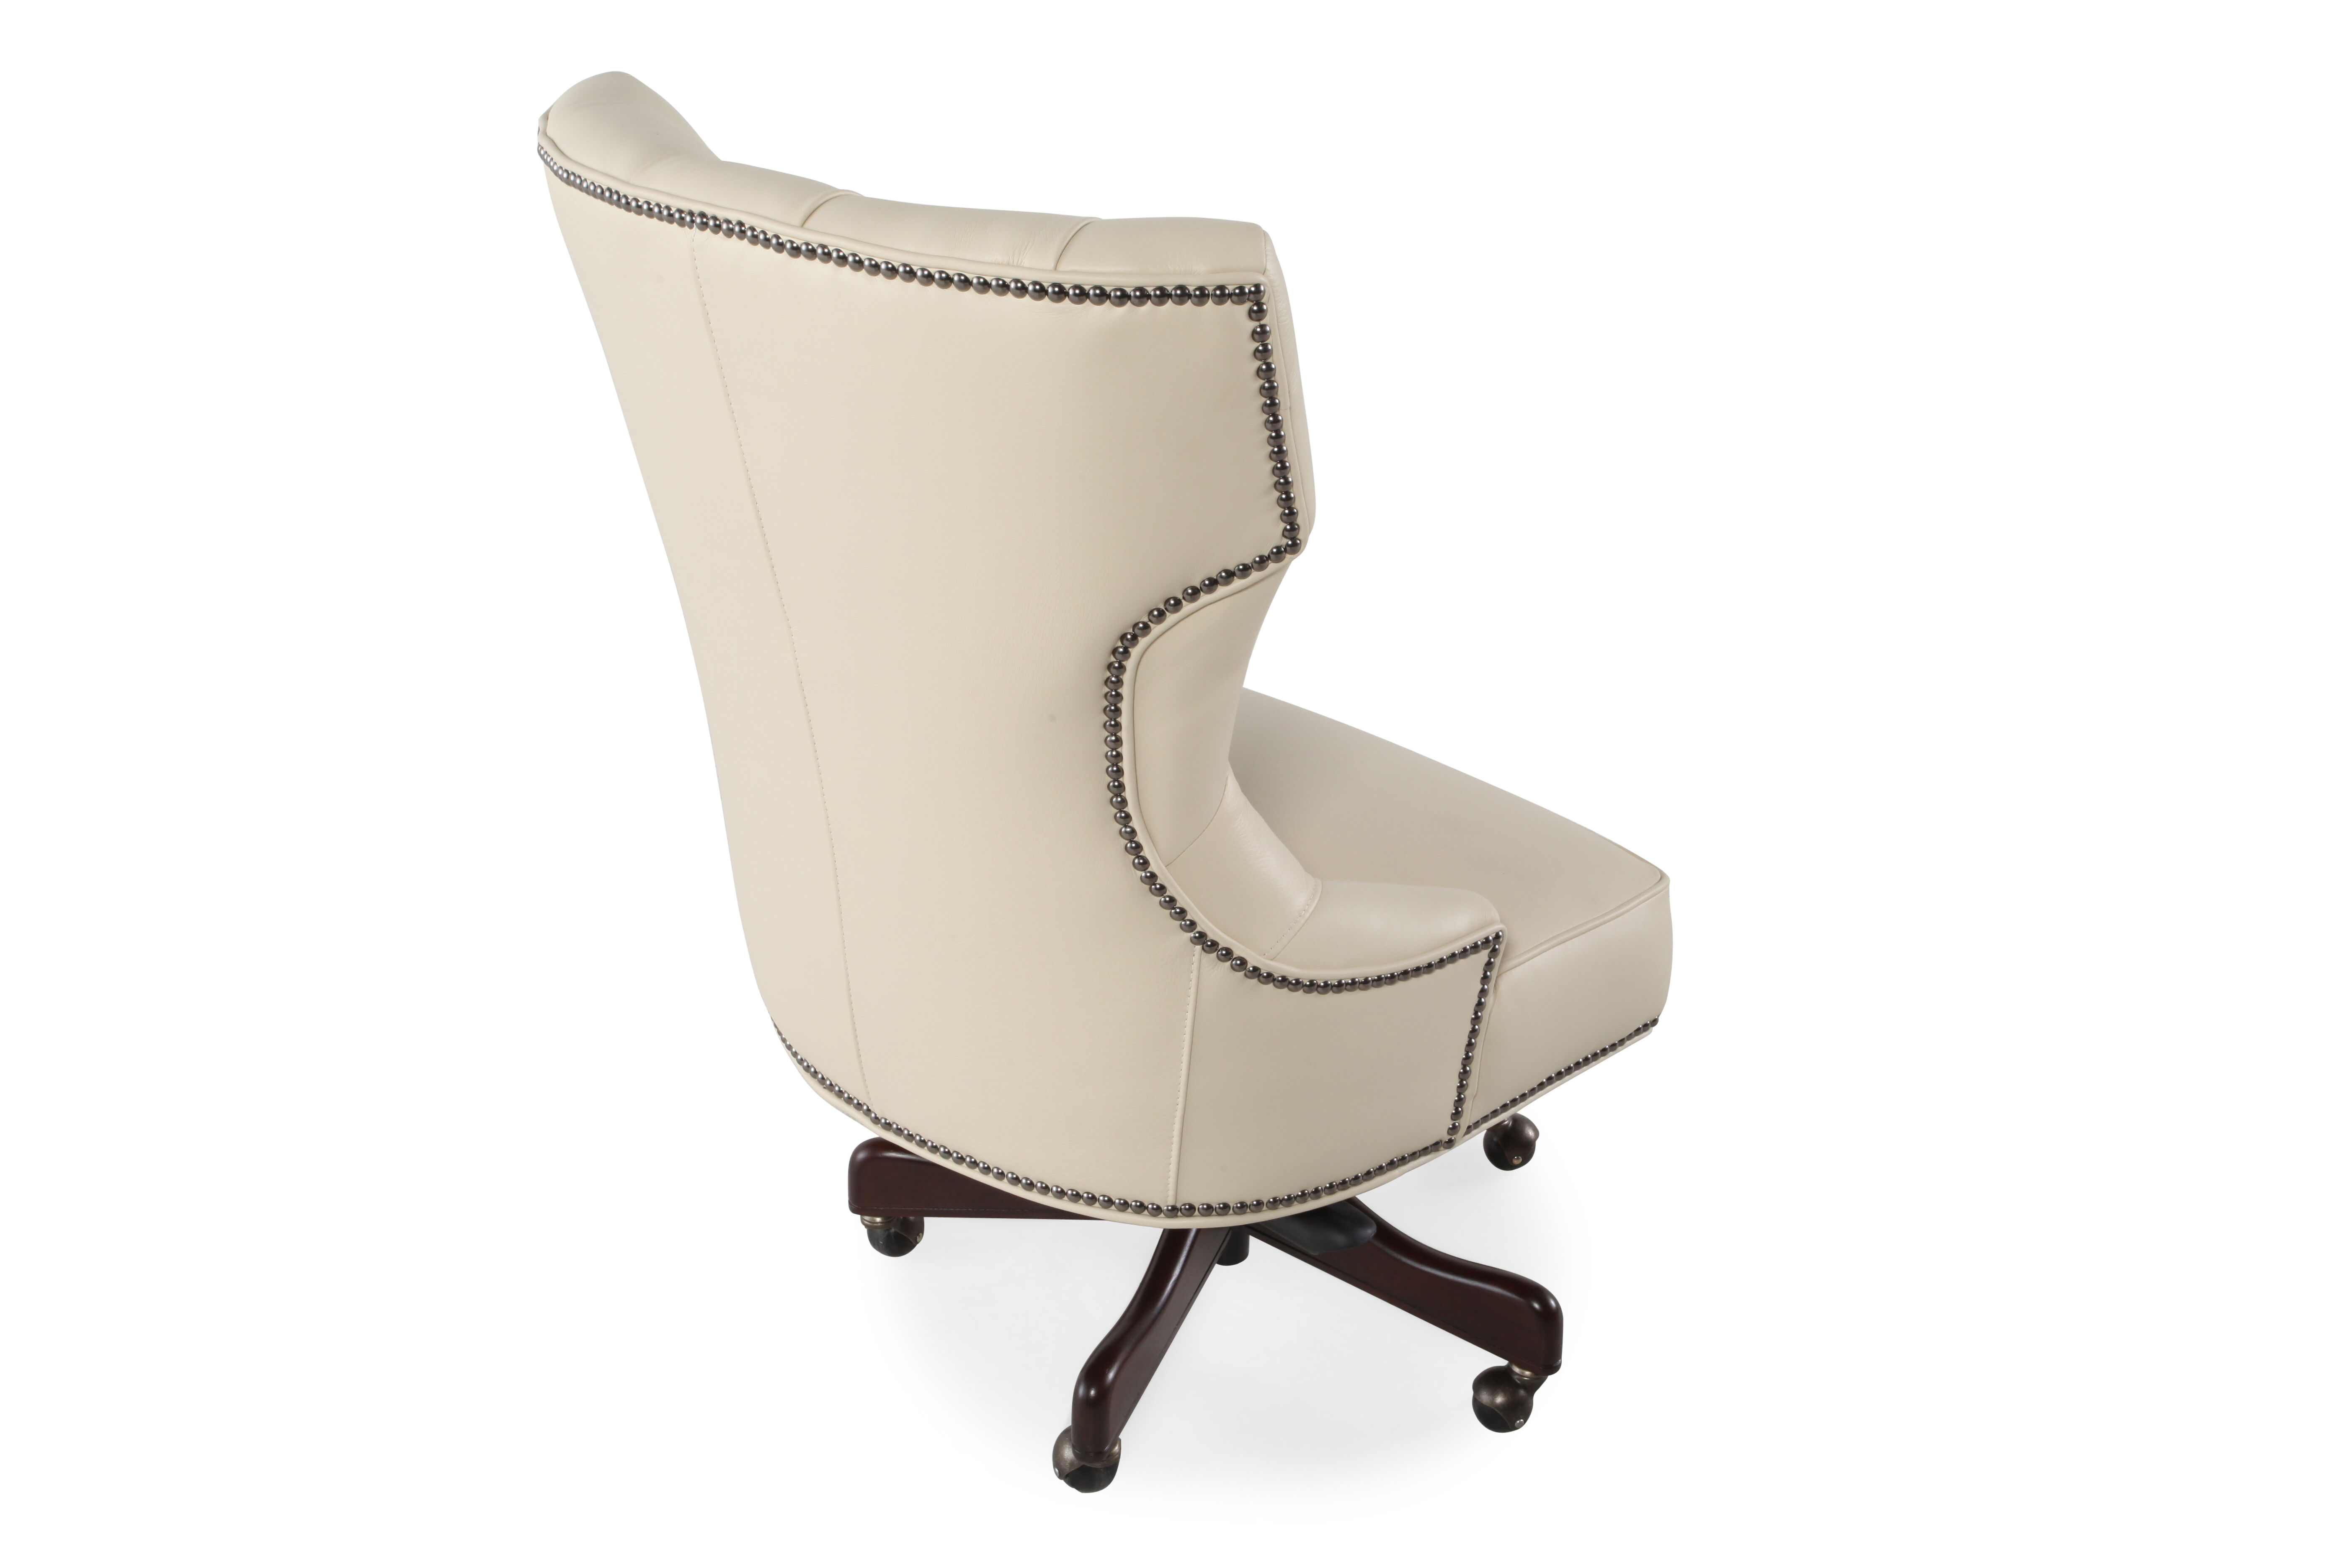 ivory leather office chair rolling bath chairs elderly button tufted swivel tilt desk in